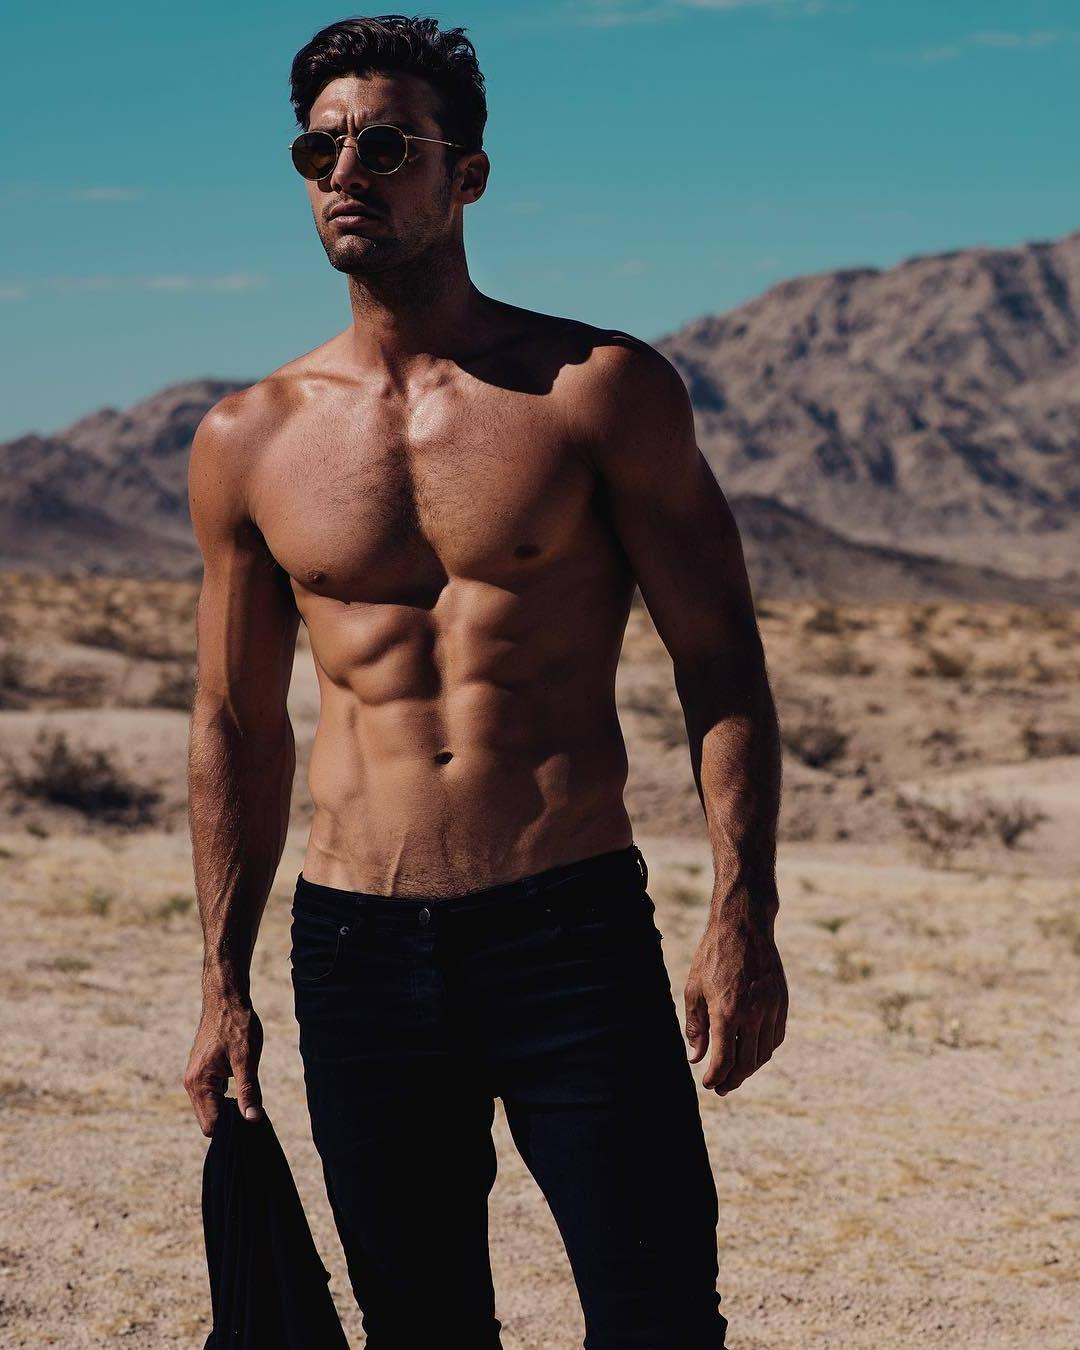 hot-shirtless-male-model-body-sunglasses-black-jeans-desert